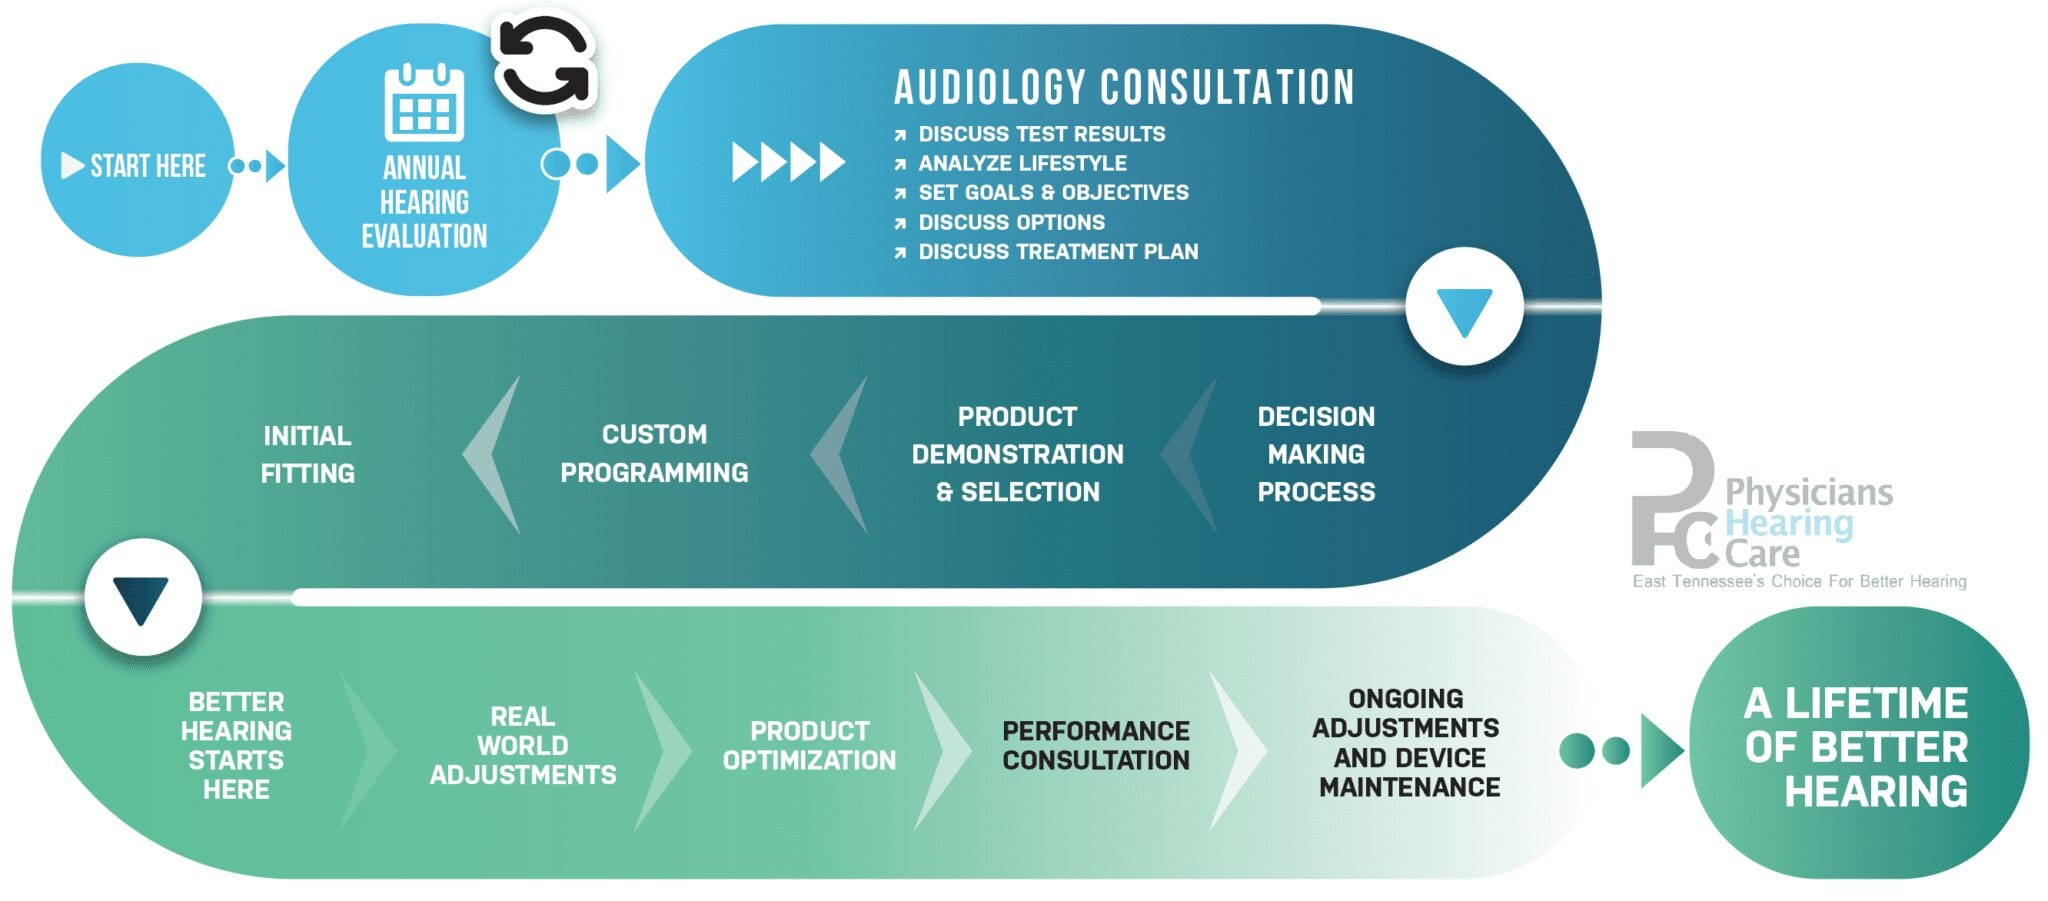 Your journey to better hearing image